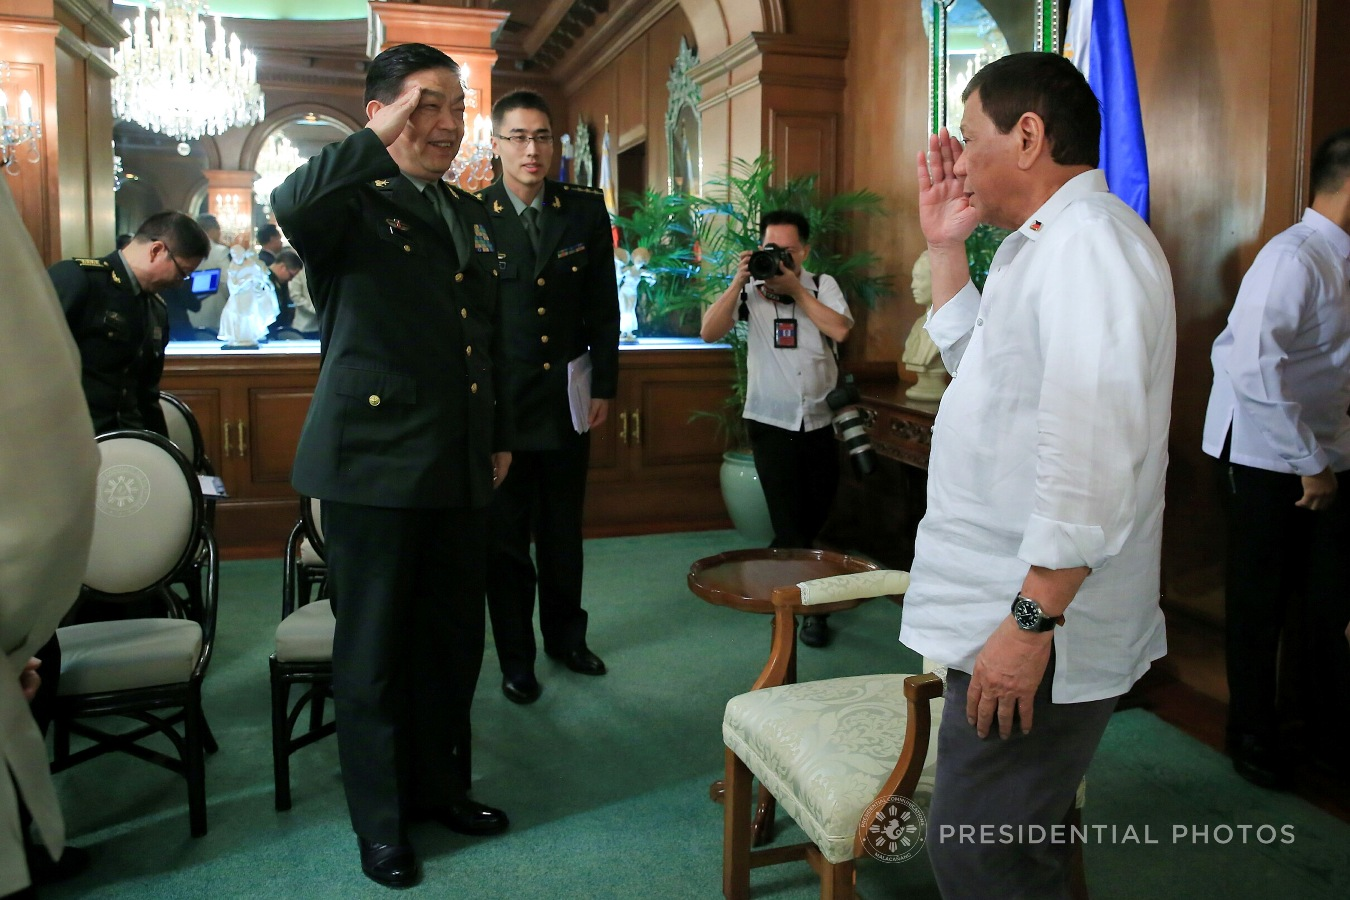 President Rodrigo Roa Duterte responds to a salute from People's Republic of China Minister of National Defense General Chang Wanquan who paid a courtesy call on the President in Malacañan Palace on October 25, 2017. ALBERT ALCAIN/PRESIDENTIAL PHOTO